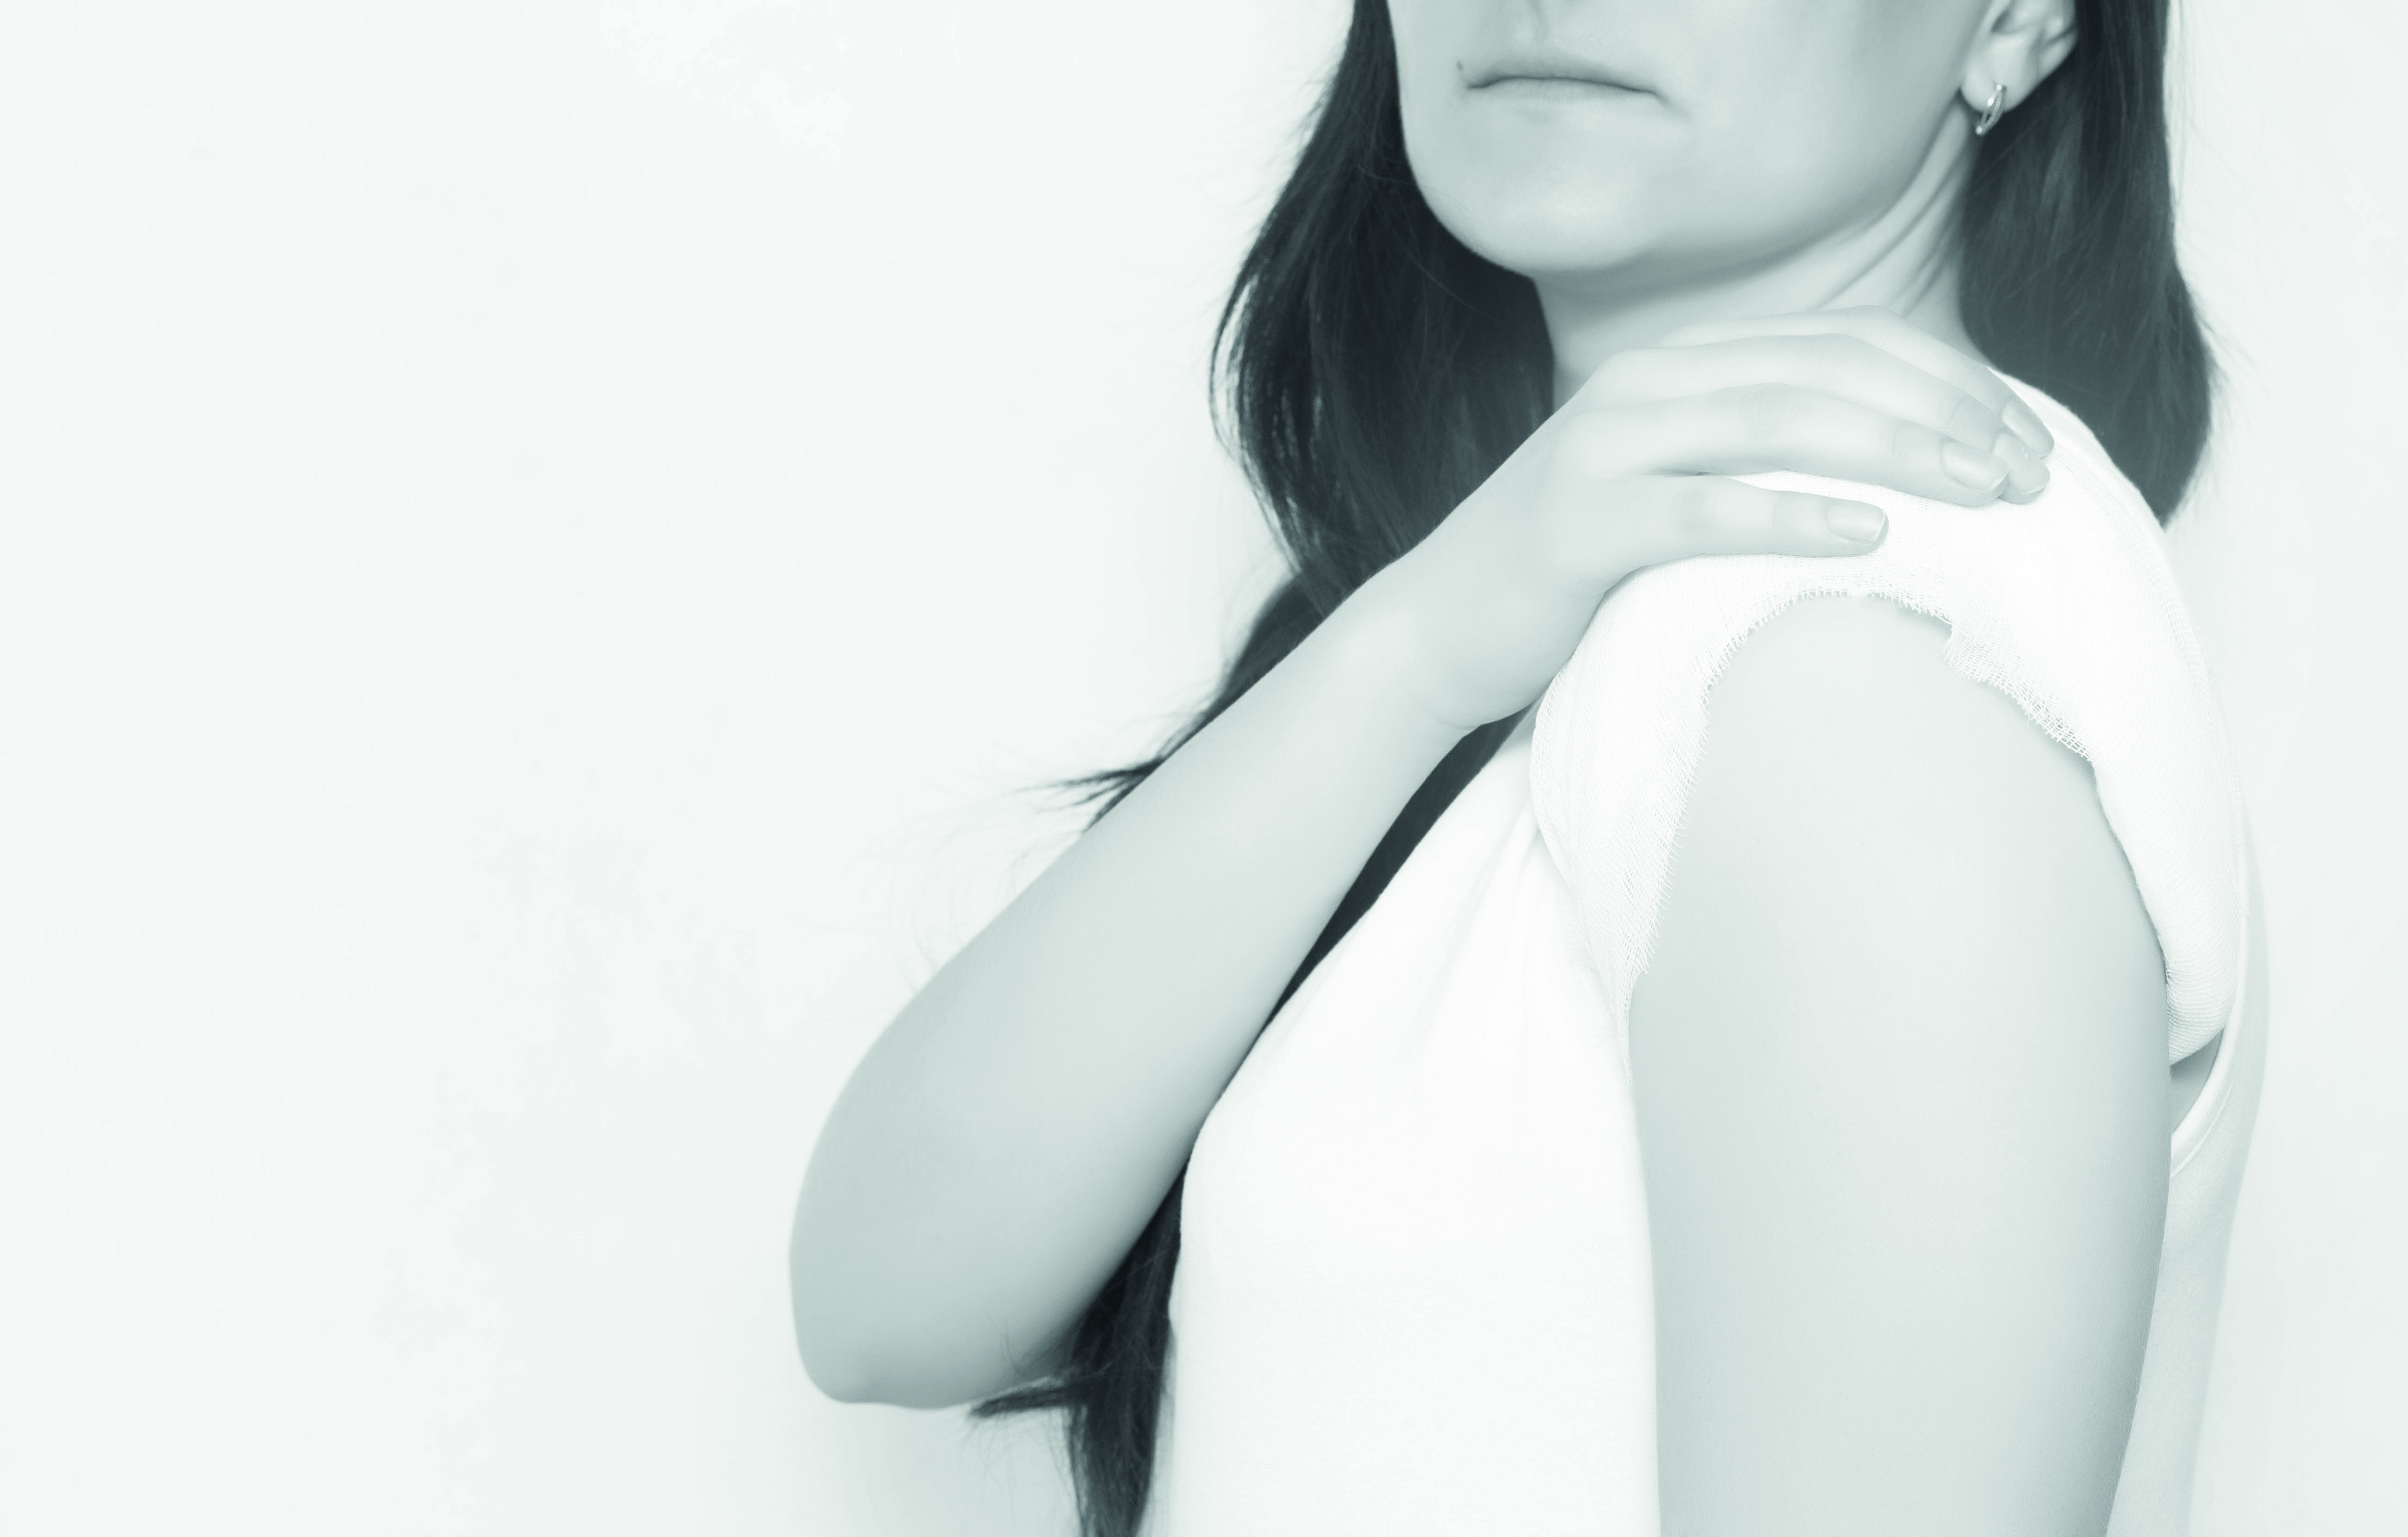 The girl holds on to the sore shoulder which has a healing compress, white background, copy space, medical, polymyalgia